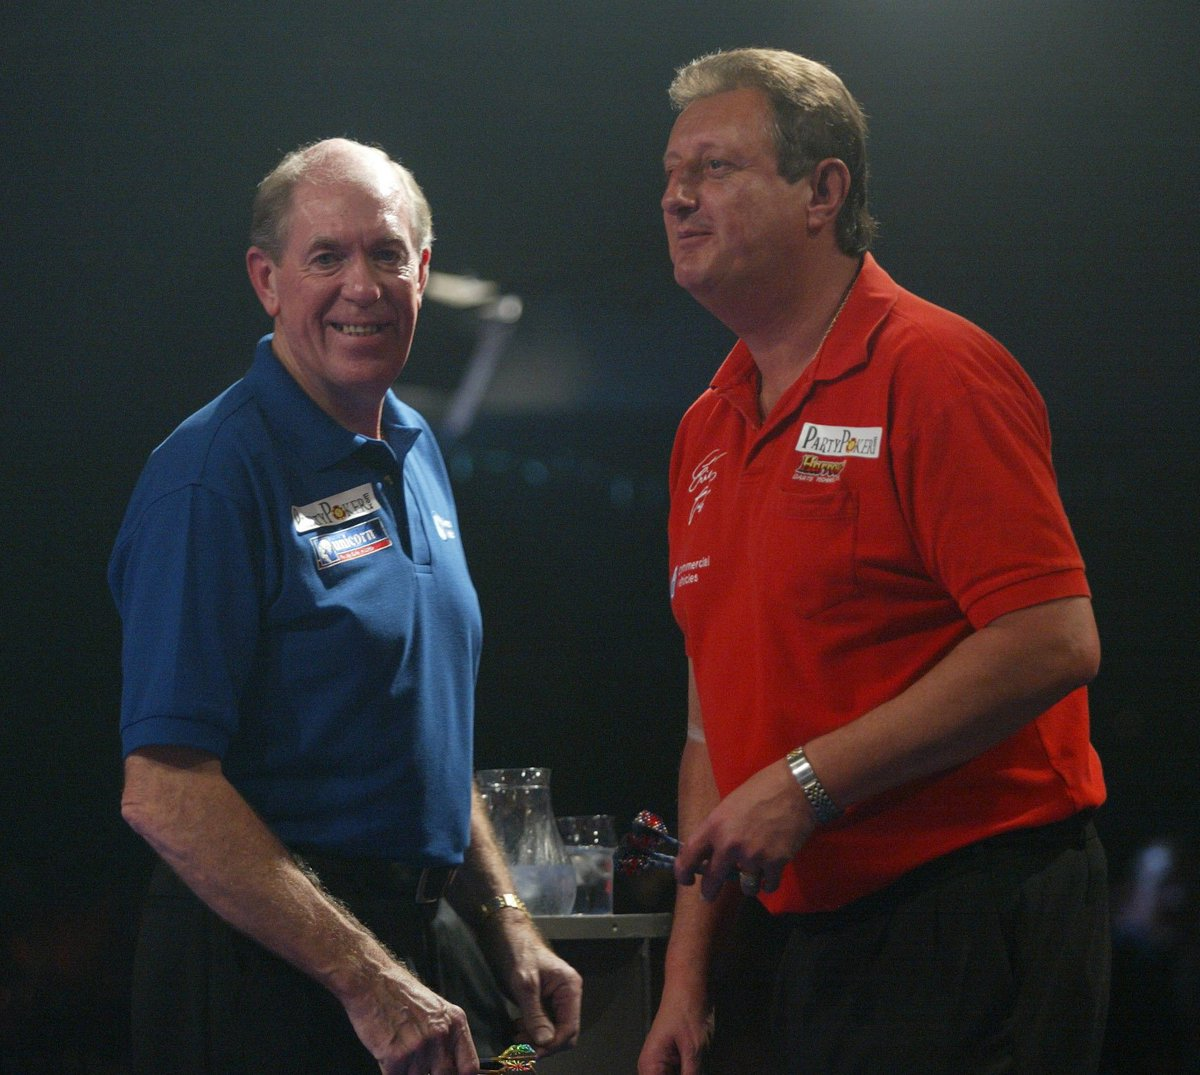 THE SHOWDOWN! Who remembers when Eric Bristow took on John Lowe as a precursor to the showdown between Taylor & Fordham? Watch the full match here ➡️ youtube.com/watch?v=pw7rT5…